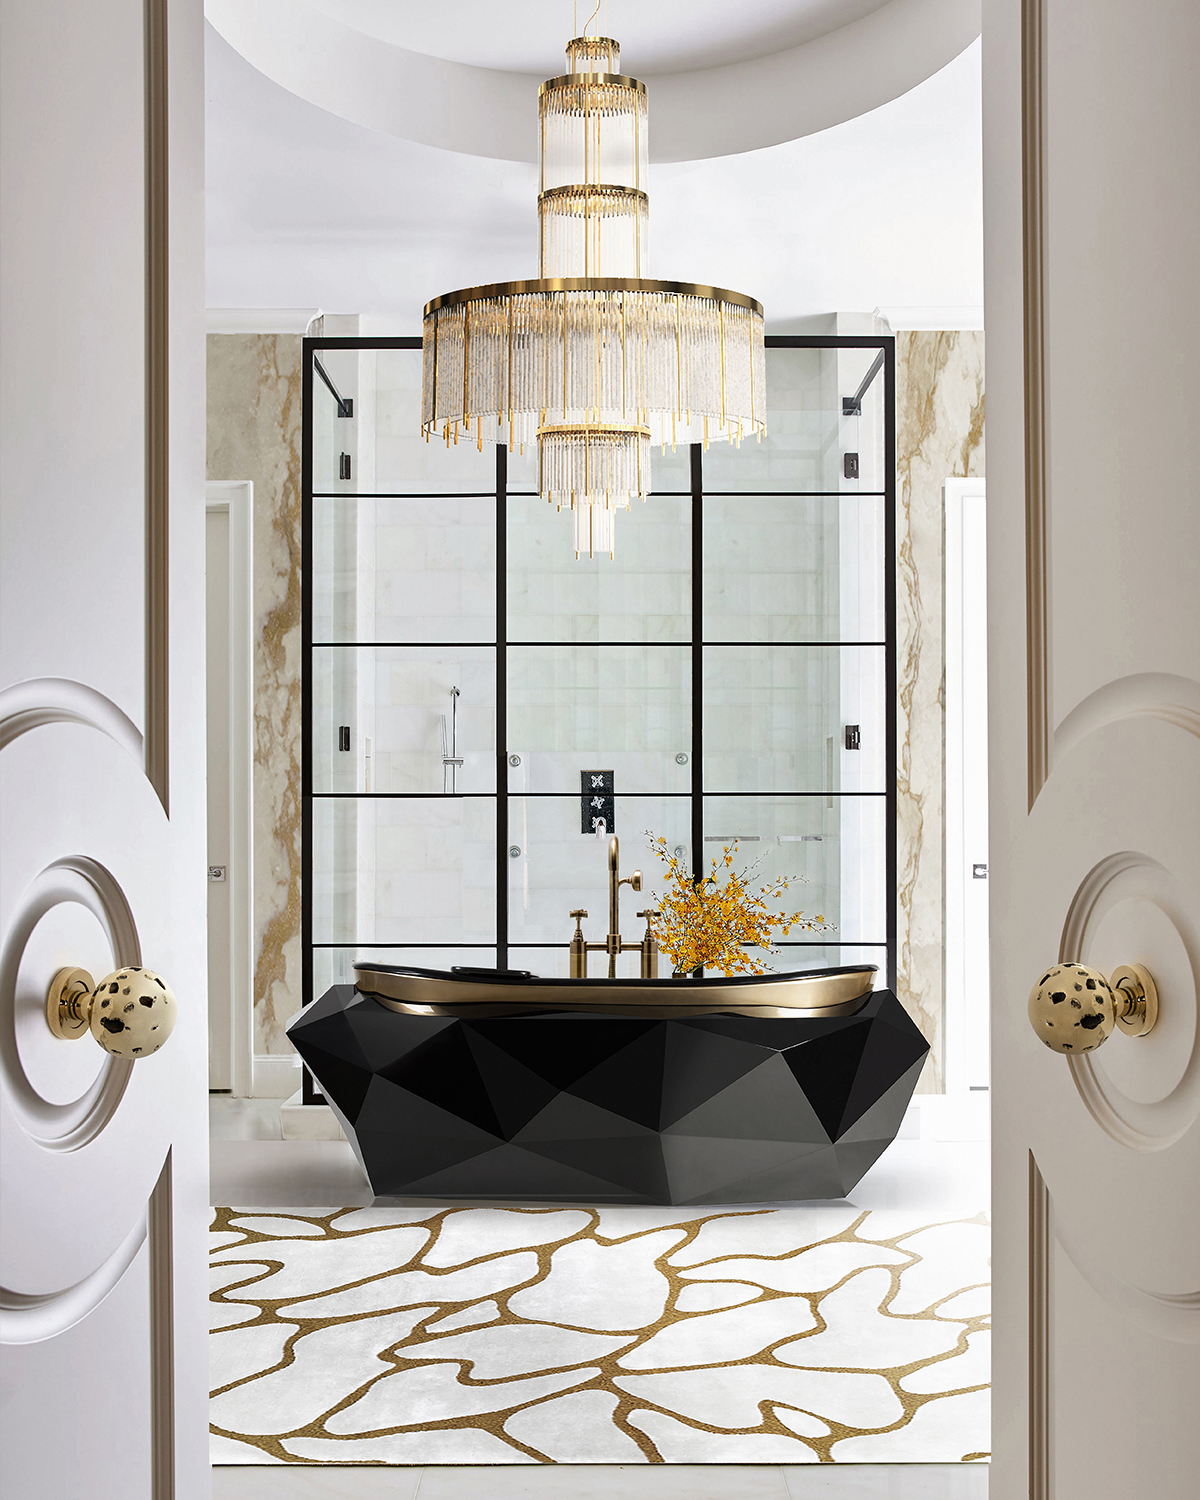 bathroom, golden bathroom, gold,maison valentina, bathub, mirror, rug, tap, bathroom decoration, bathroom decor  5 Ideas to Add a Touch of Gold to Your Bathroom 5 ideas to add a touch of gold to your bathroom 5